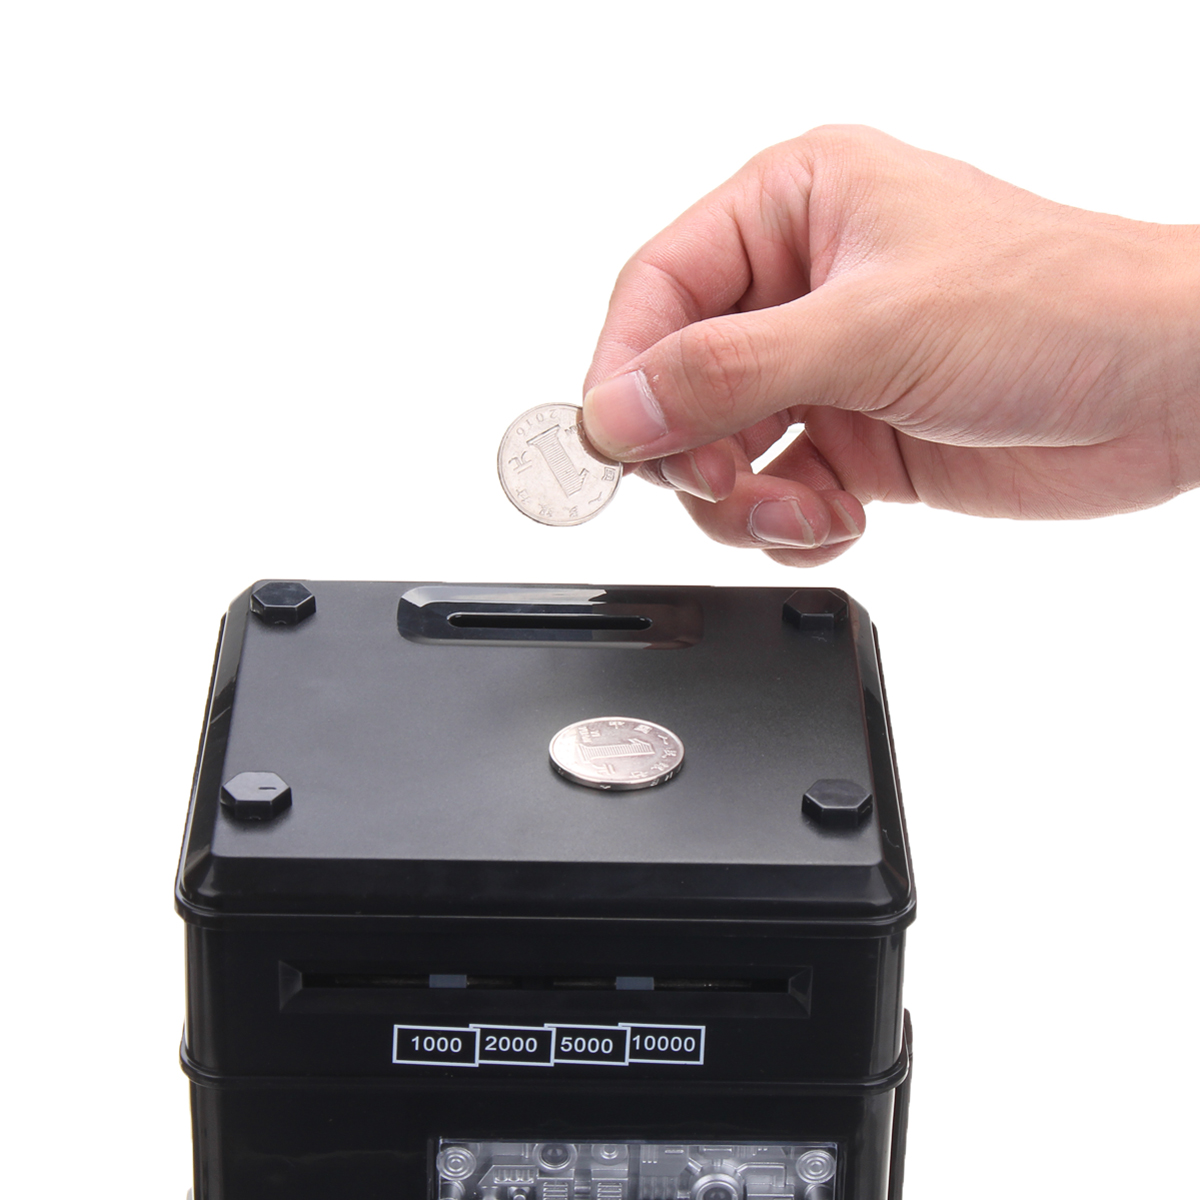 Code Key Lock Piggy Bank Coins Cash Saving Money Box Counter Mini Safe Box Gift For Children